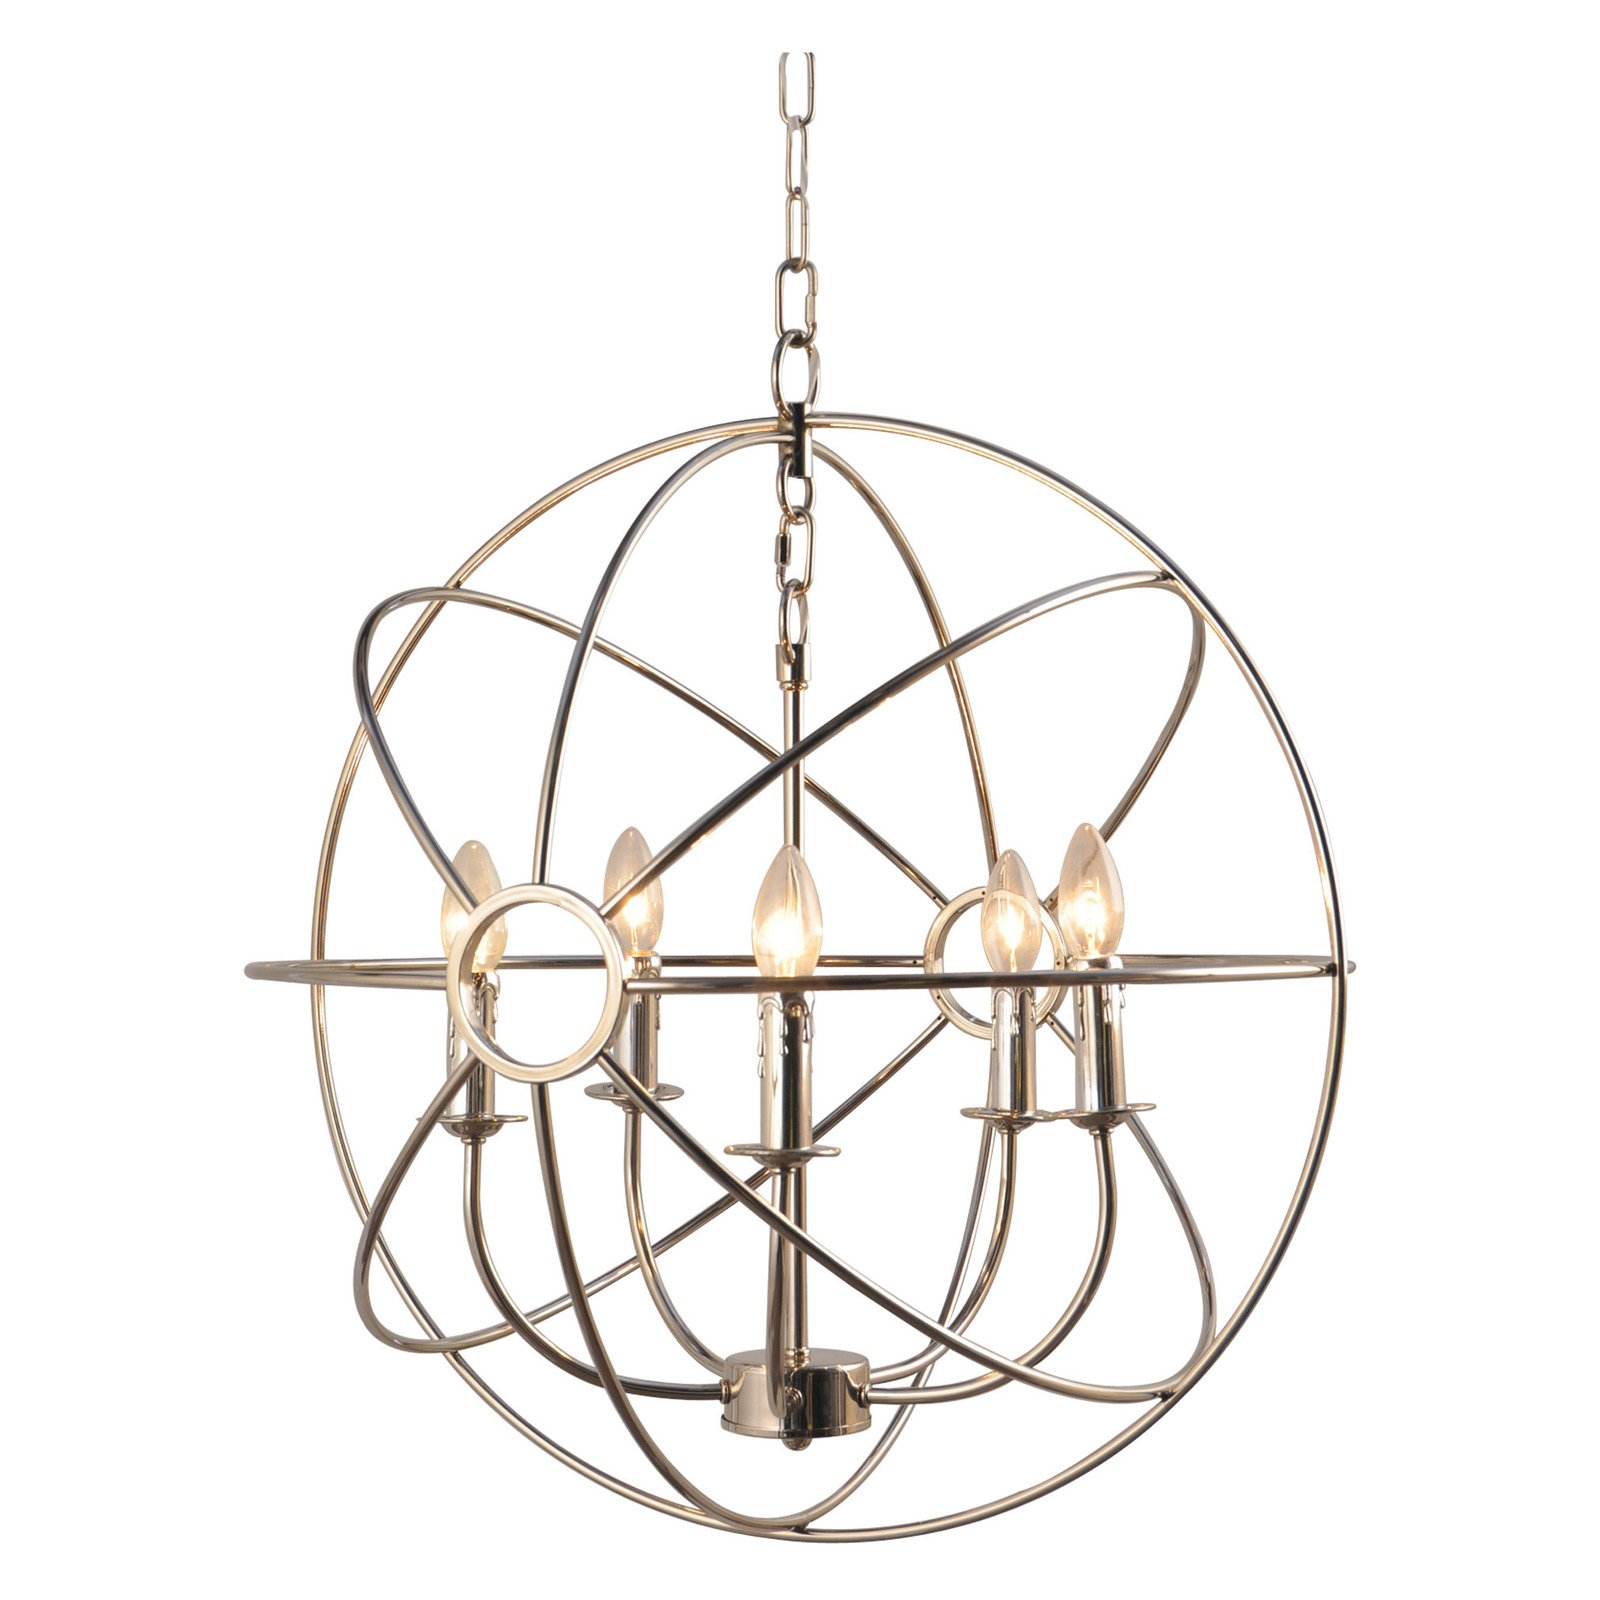 Yosemite Home Decor Shooting Star 5-Light Mini Chandelier - 23.6W in. - nickel-plated Finish